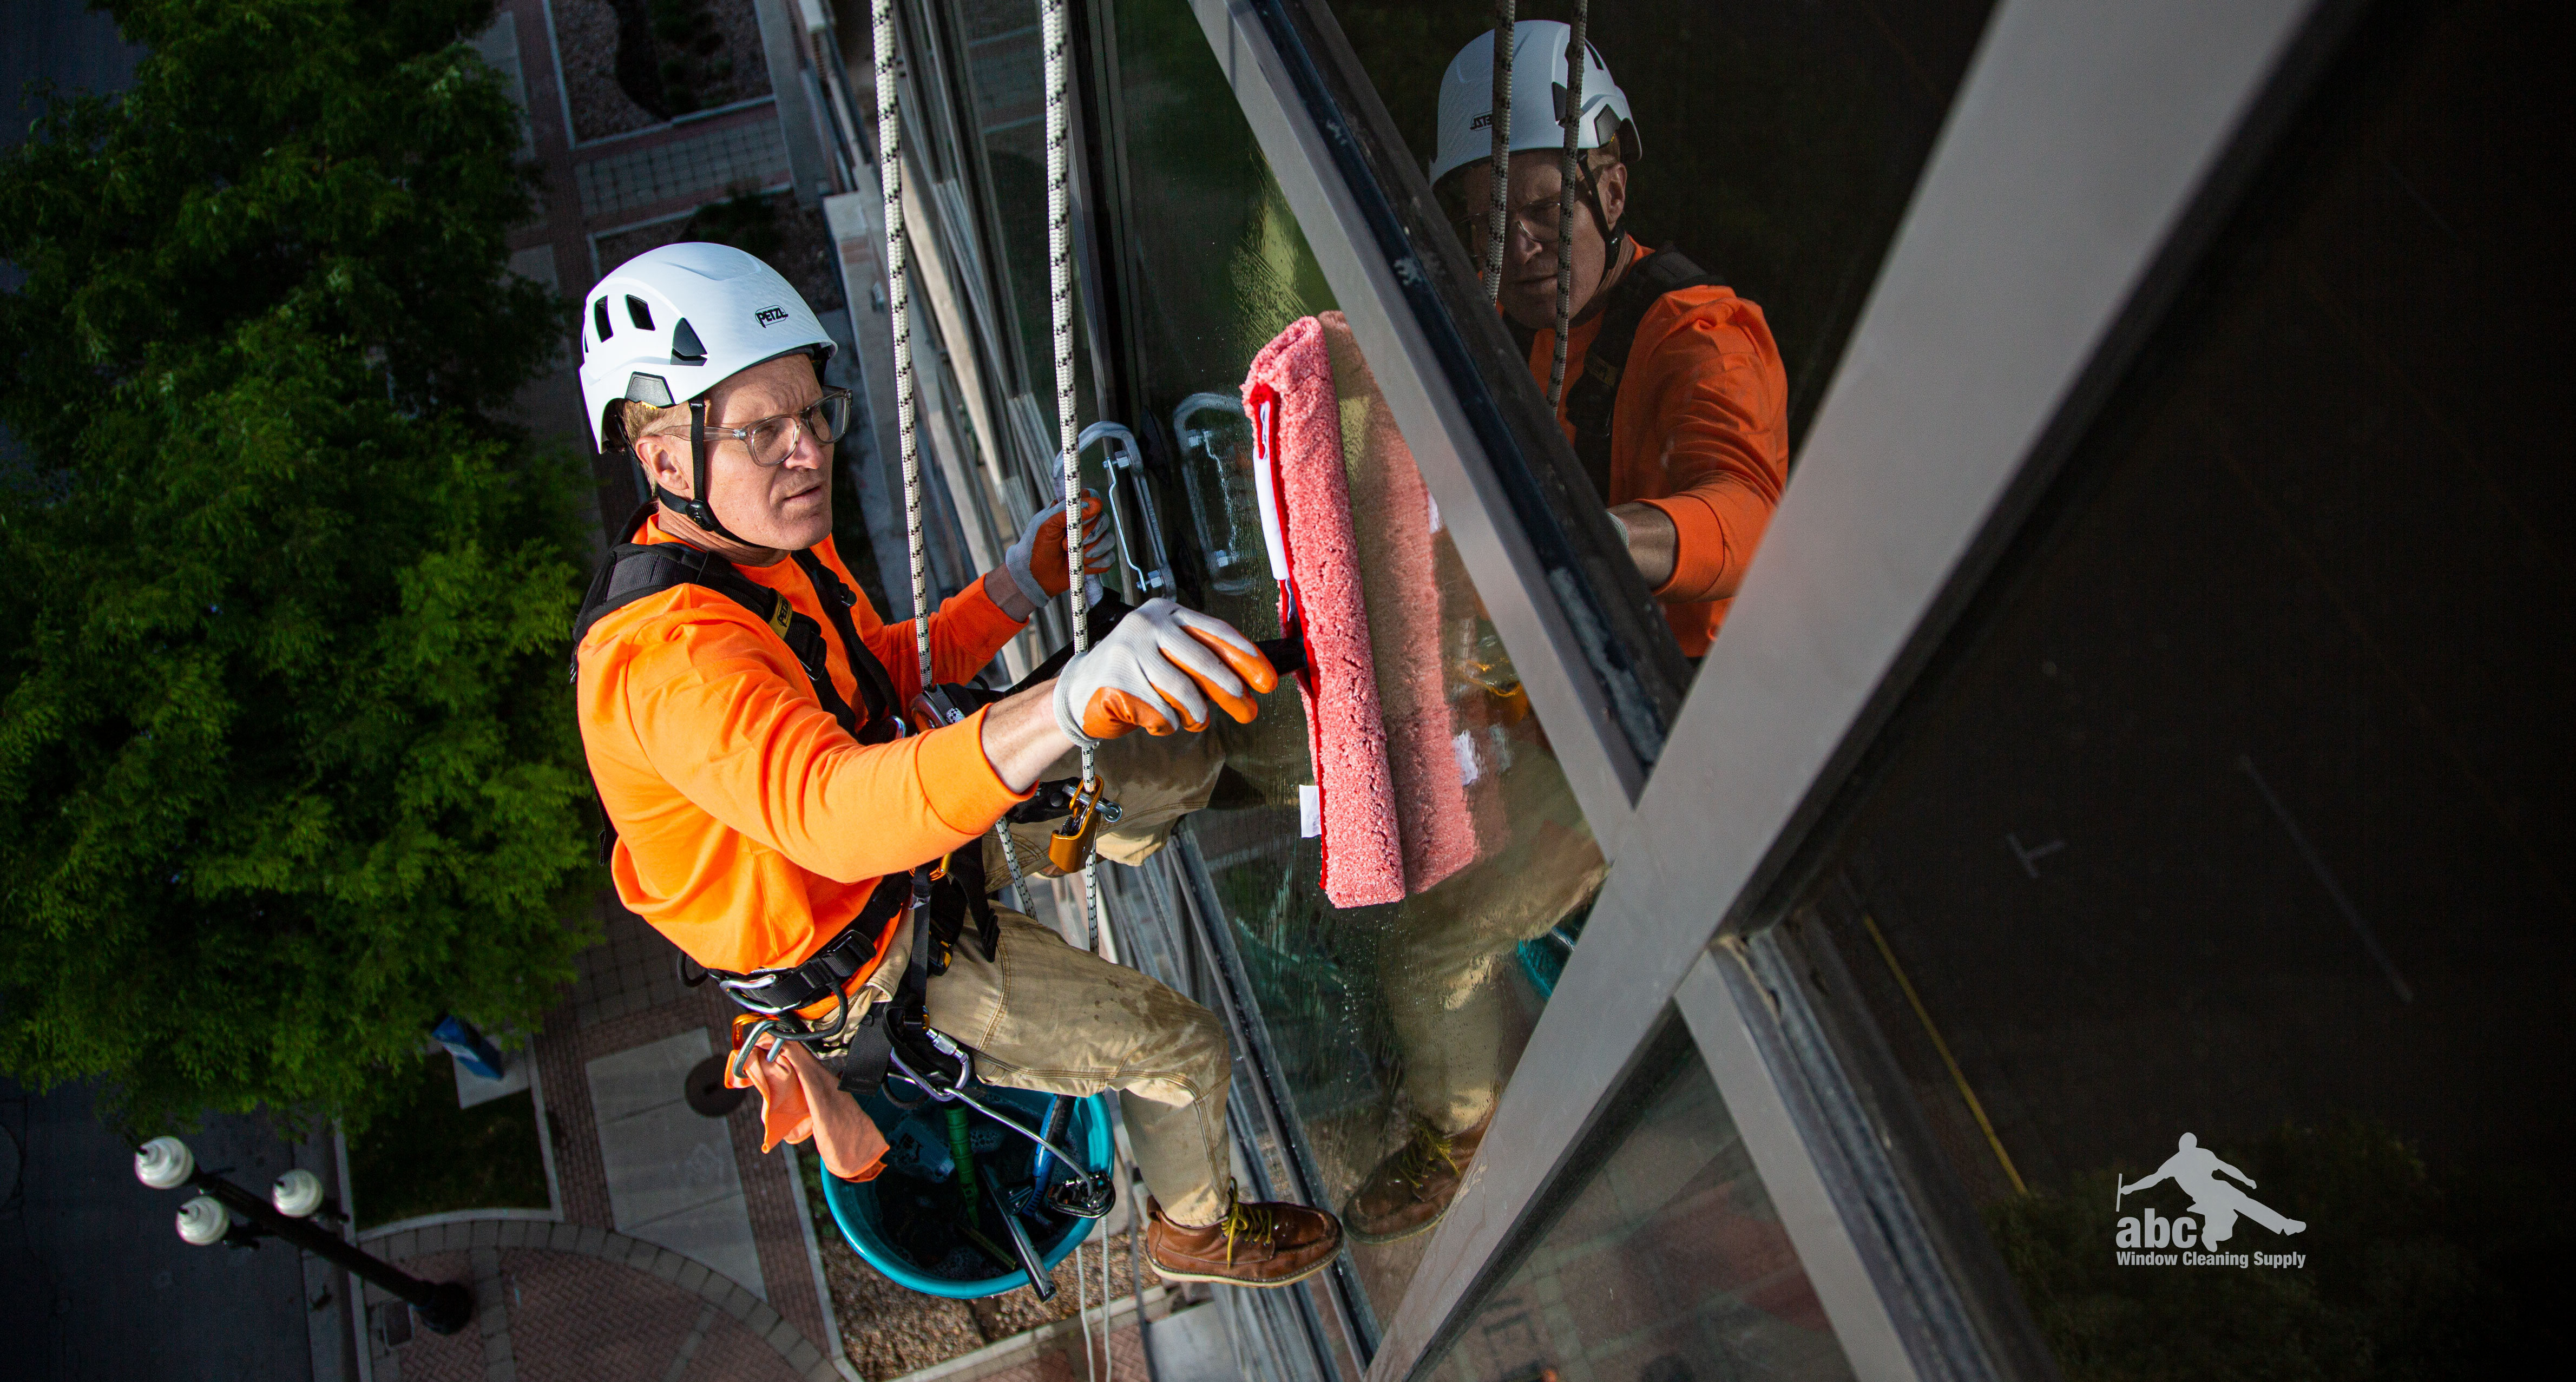 High rise window cleaning in action with a rope descent system.